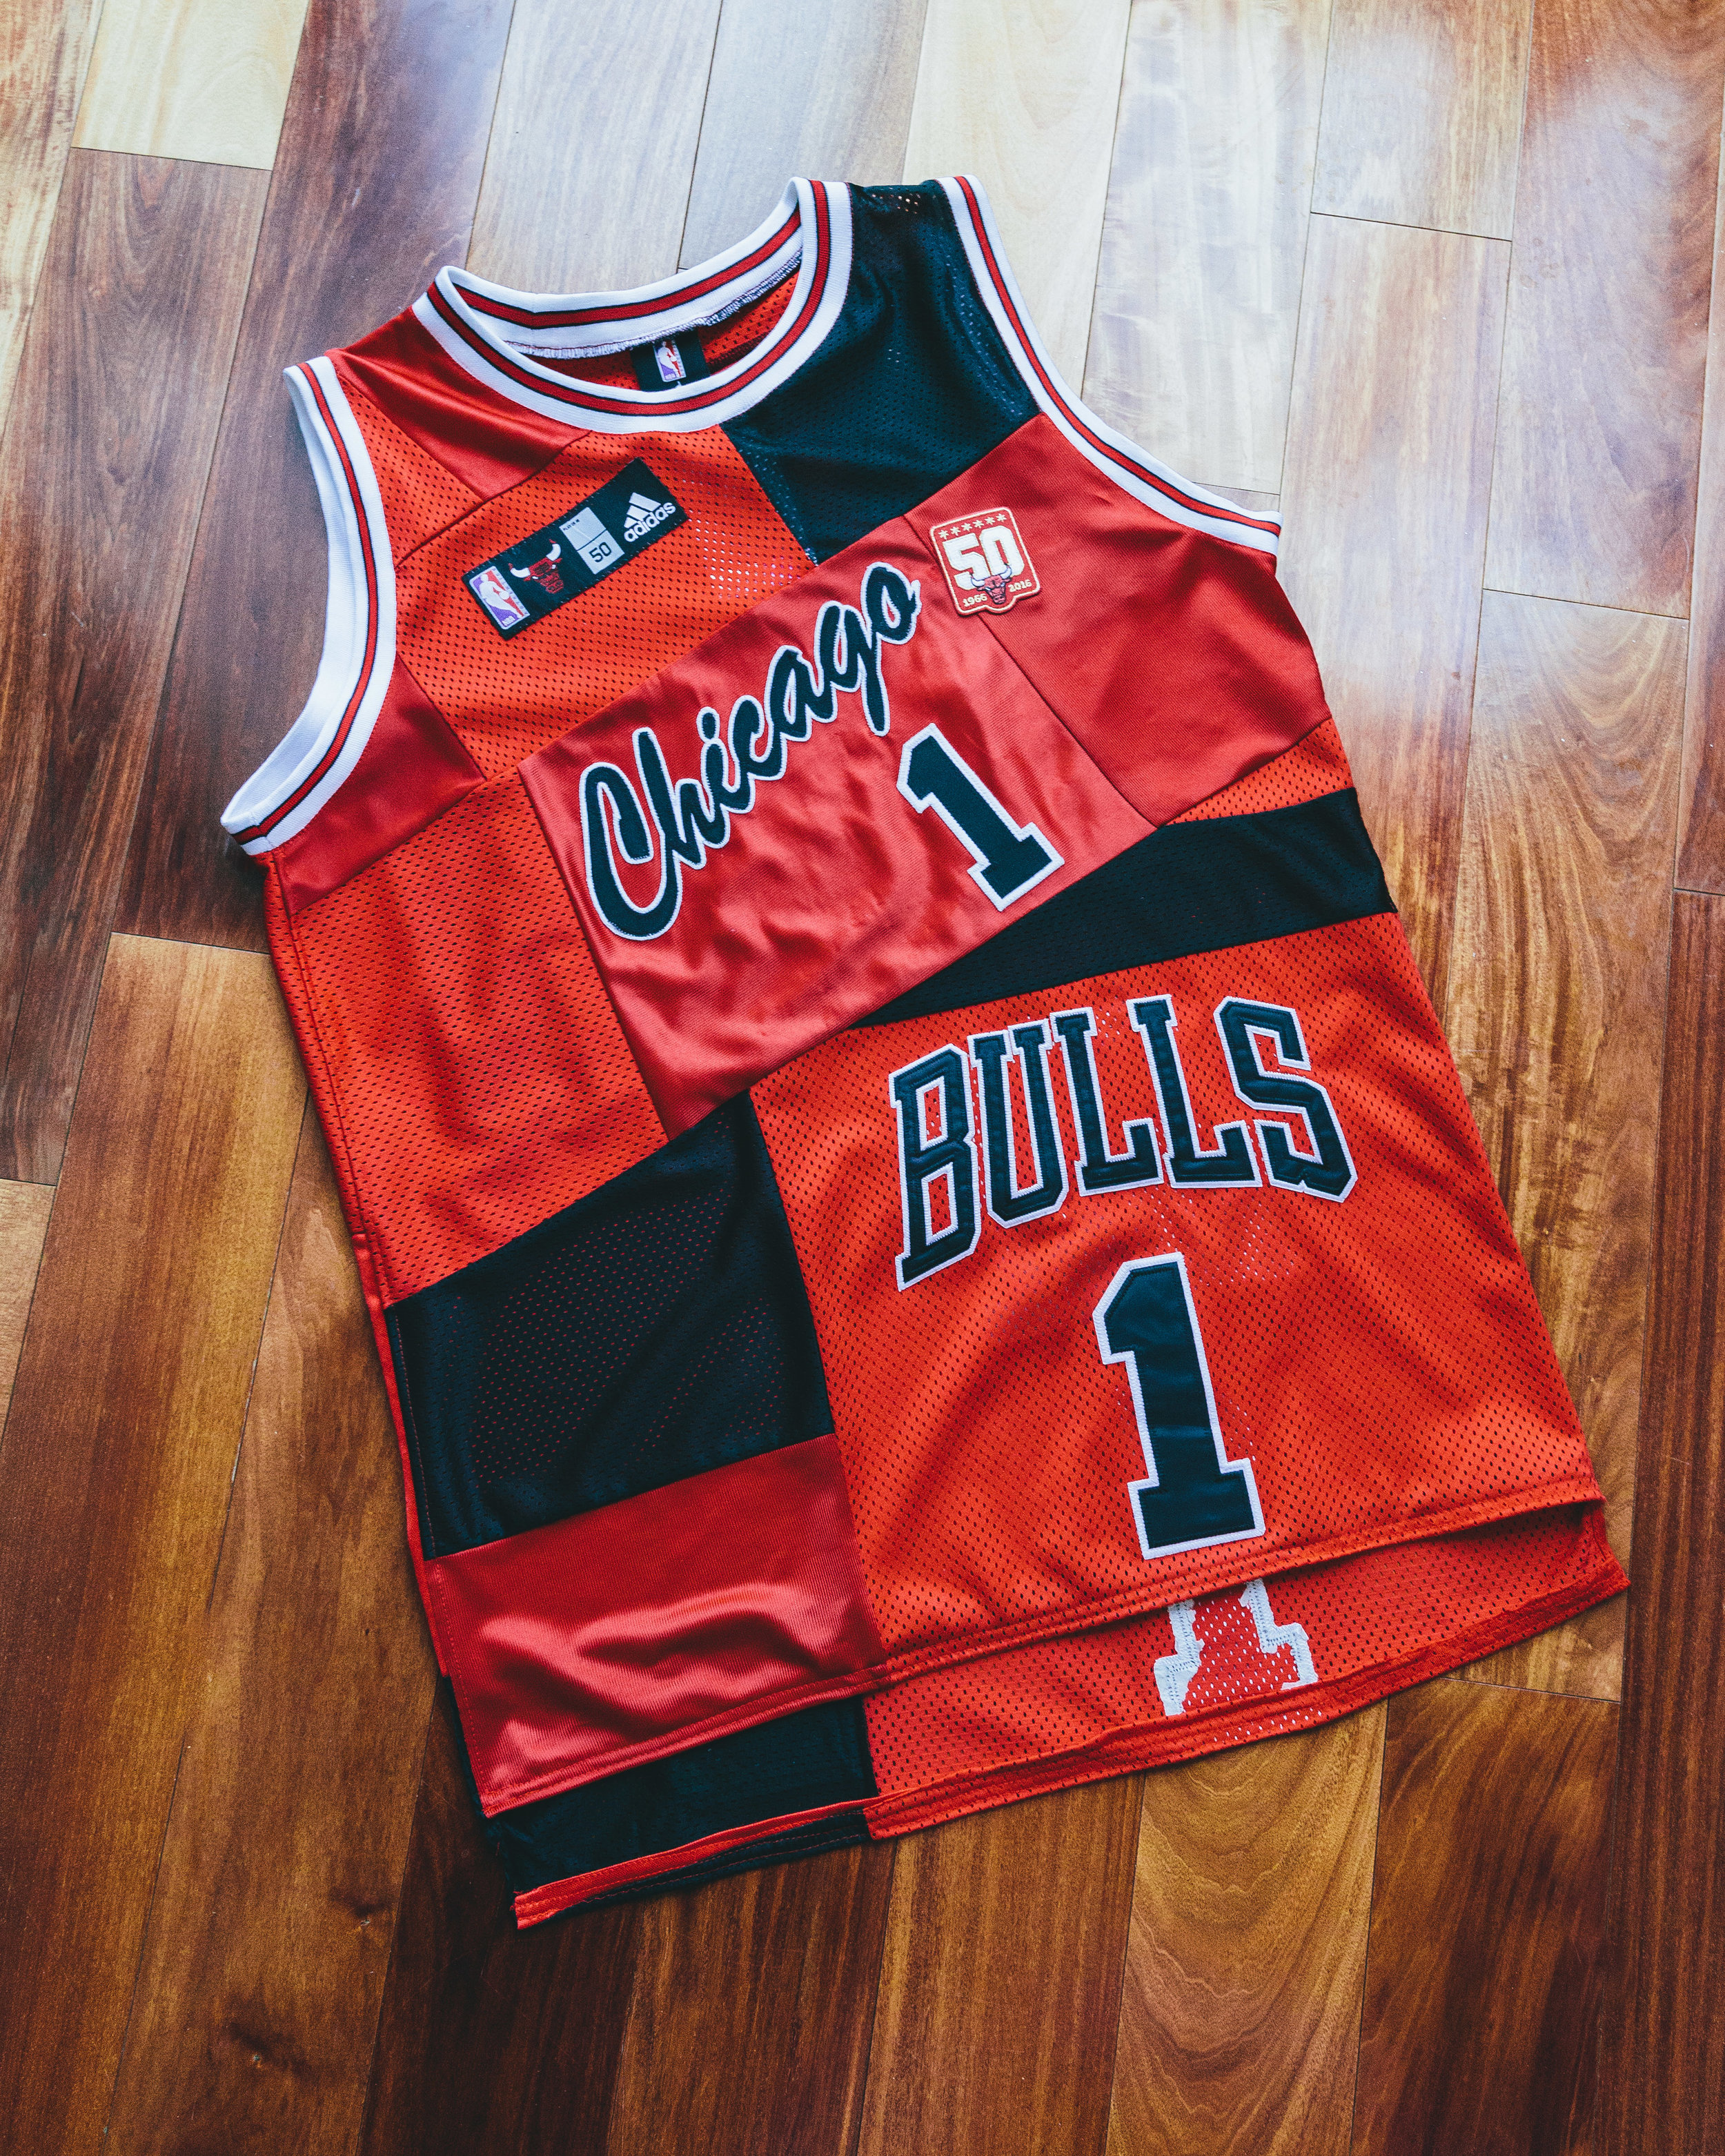 D. Rose Jersey - Patchworked from various Chicago Bulls jerseys into one new piece